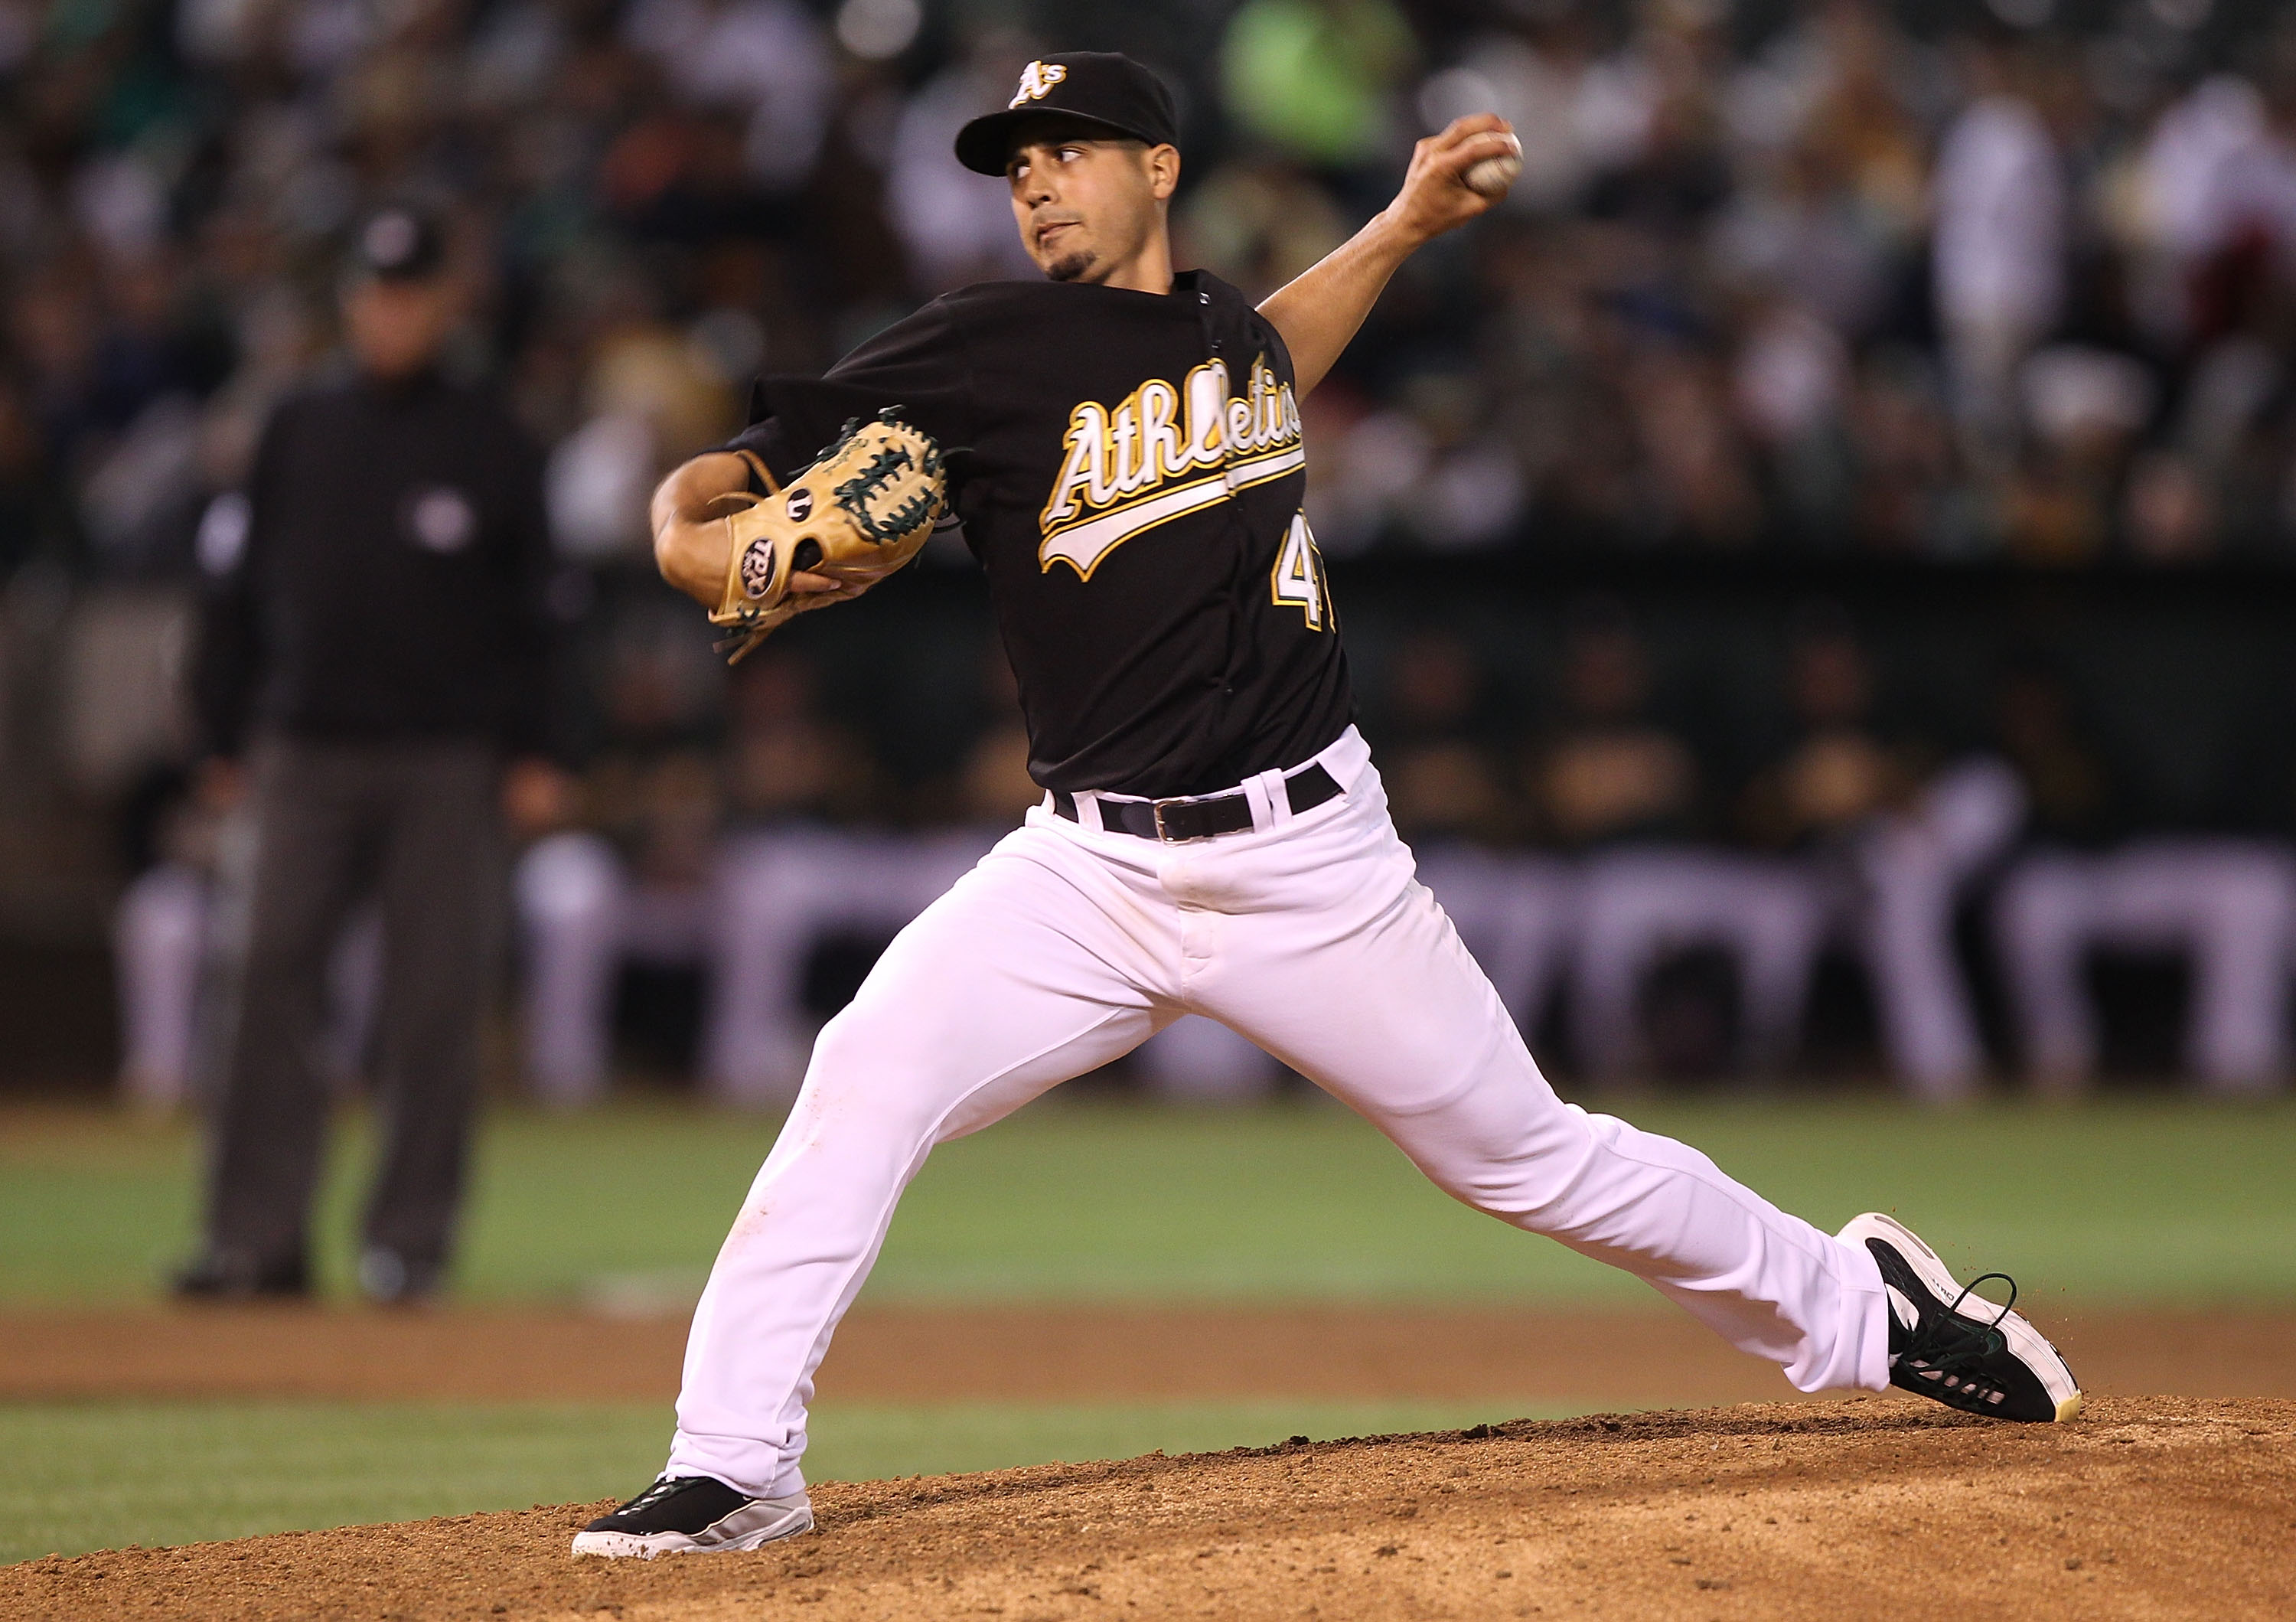 OAKLAND, CA - SEPTEMBER 03:  Gio Gonzalez #47 of the Oakland Athletics pitches against the Los Angeles Angels of Anaheim during a Major League Baseball game at the Oakland-Alameda County Coliseum on September 3, 2010 in Oakland, California.  (Photo by Jed